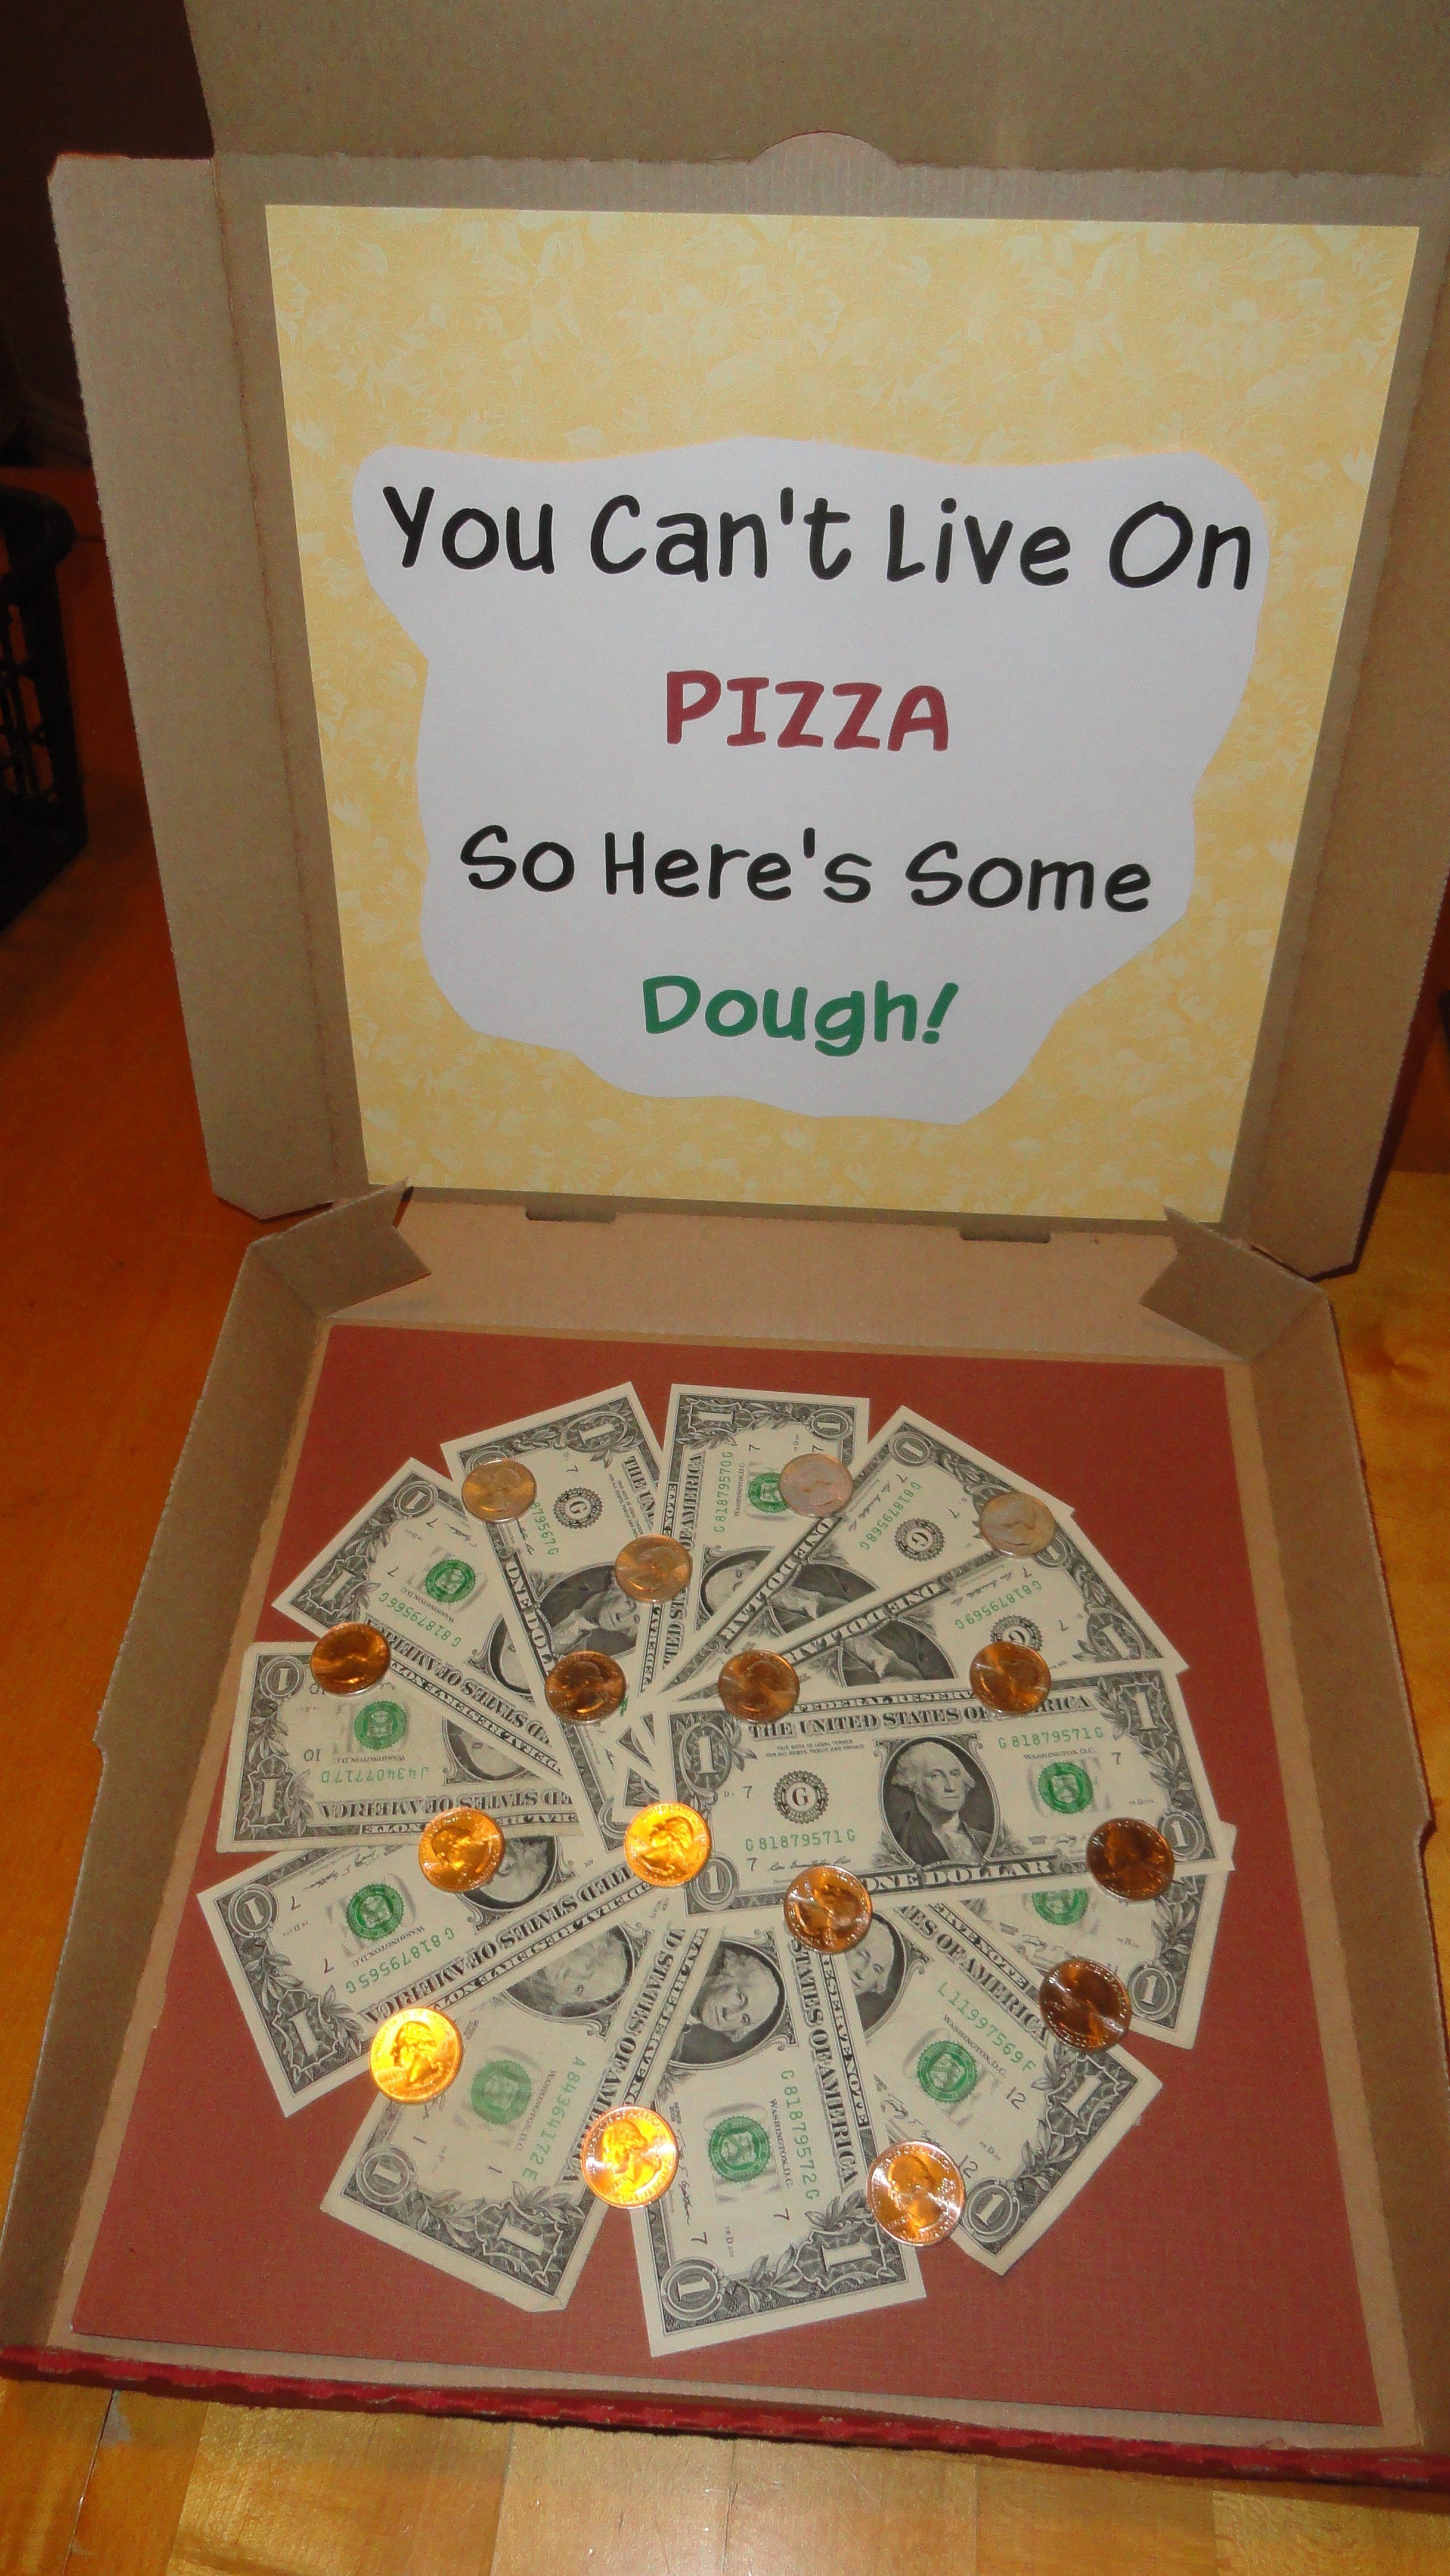 10 Nice Creative White Elephant Gift Ideas money pizza white elephant or gift how cool is it to open a pizza 4 2020